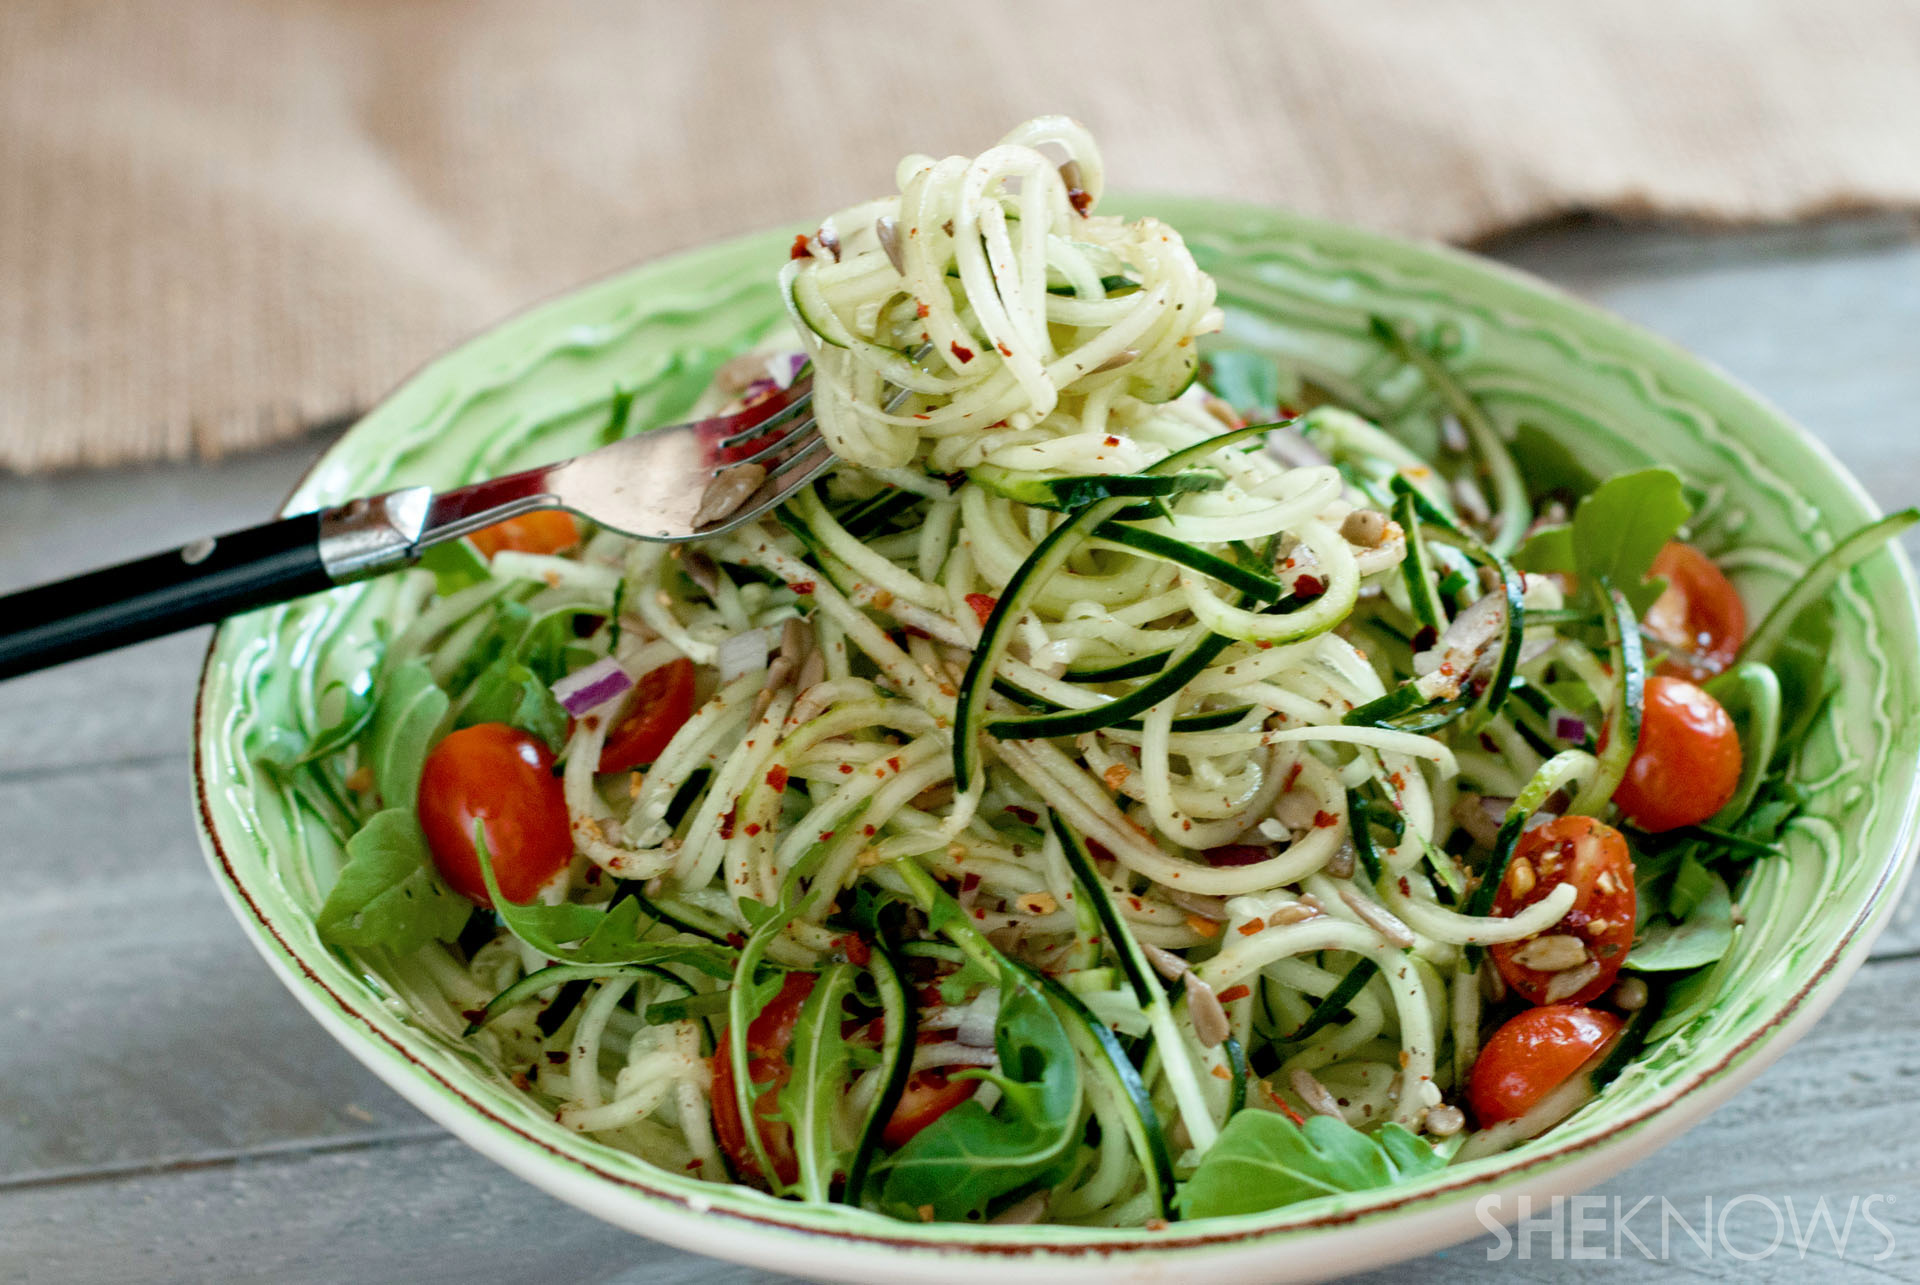 Zucchini noodles? Been there, done that. Cucumber noodles are where it's at.